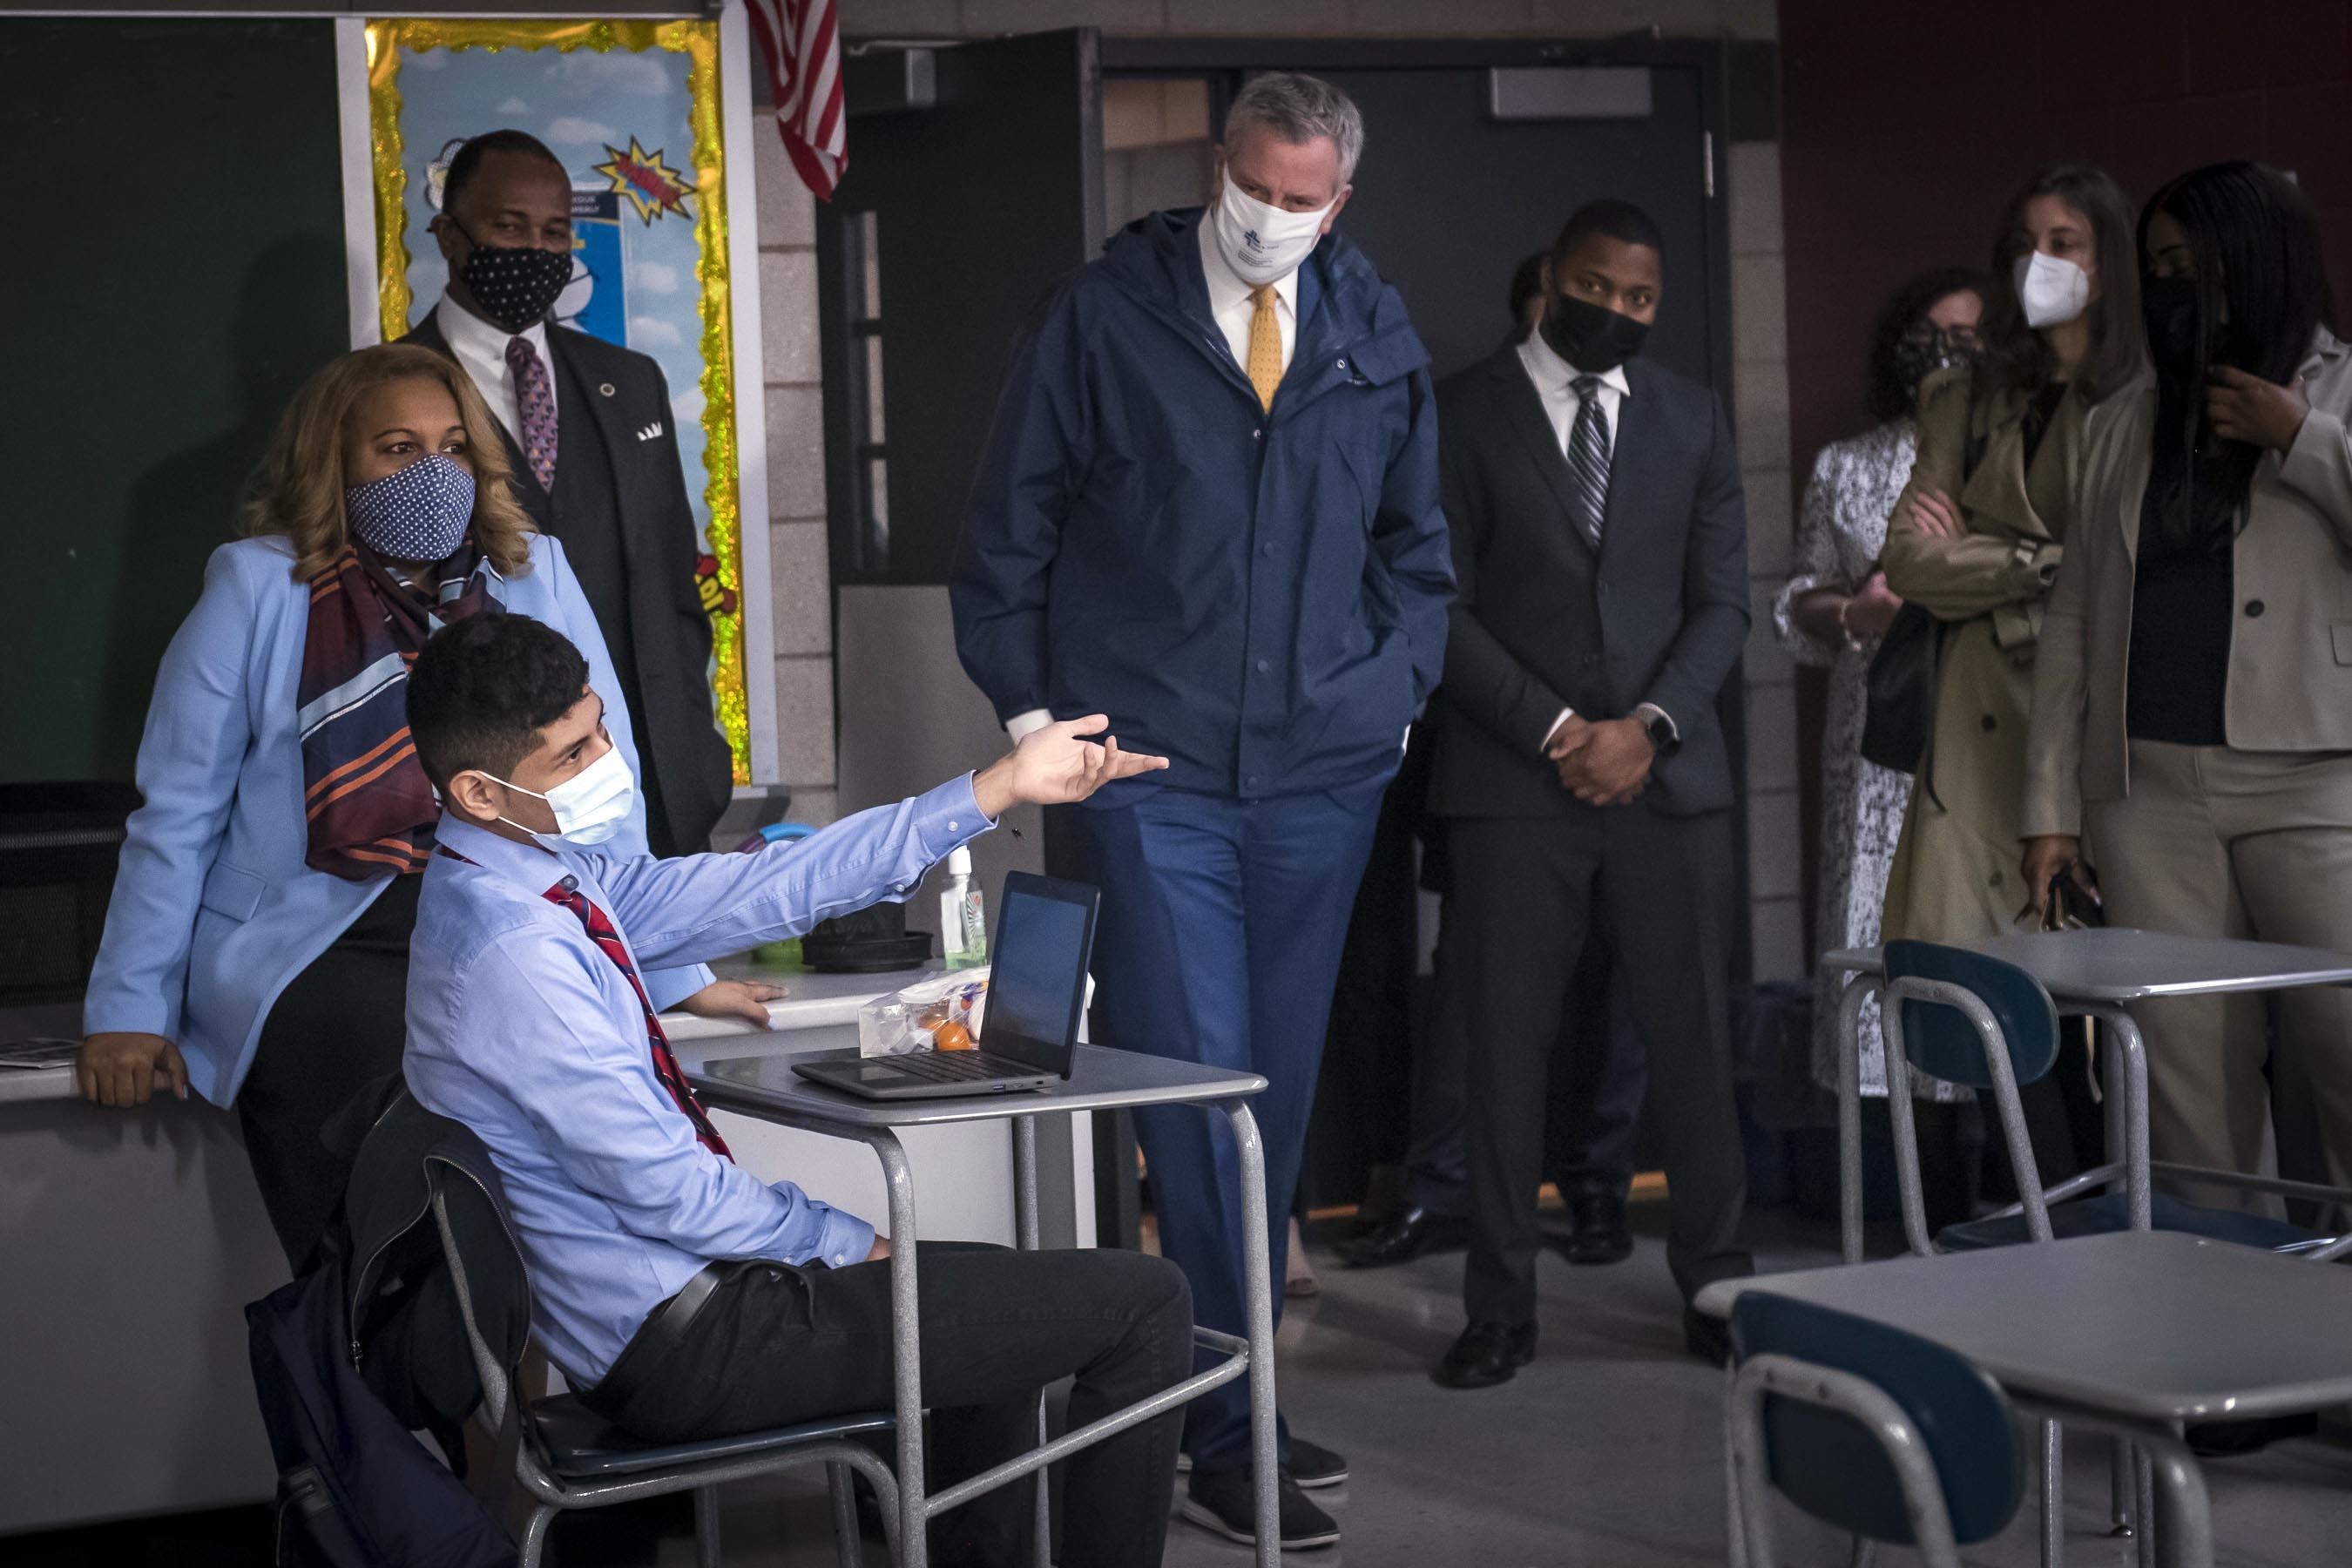 Mayor Bill de Blasio and Chancellor Meisha Porter join school leadership at the Bronx School for Law, Government and Justice in the Bronx, to greet high school students and celebrate reopening. Monday, March 22, 2021. Credit: Ed Reed/Mayoral Photography Office.